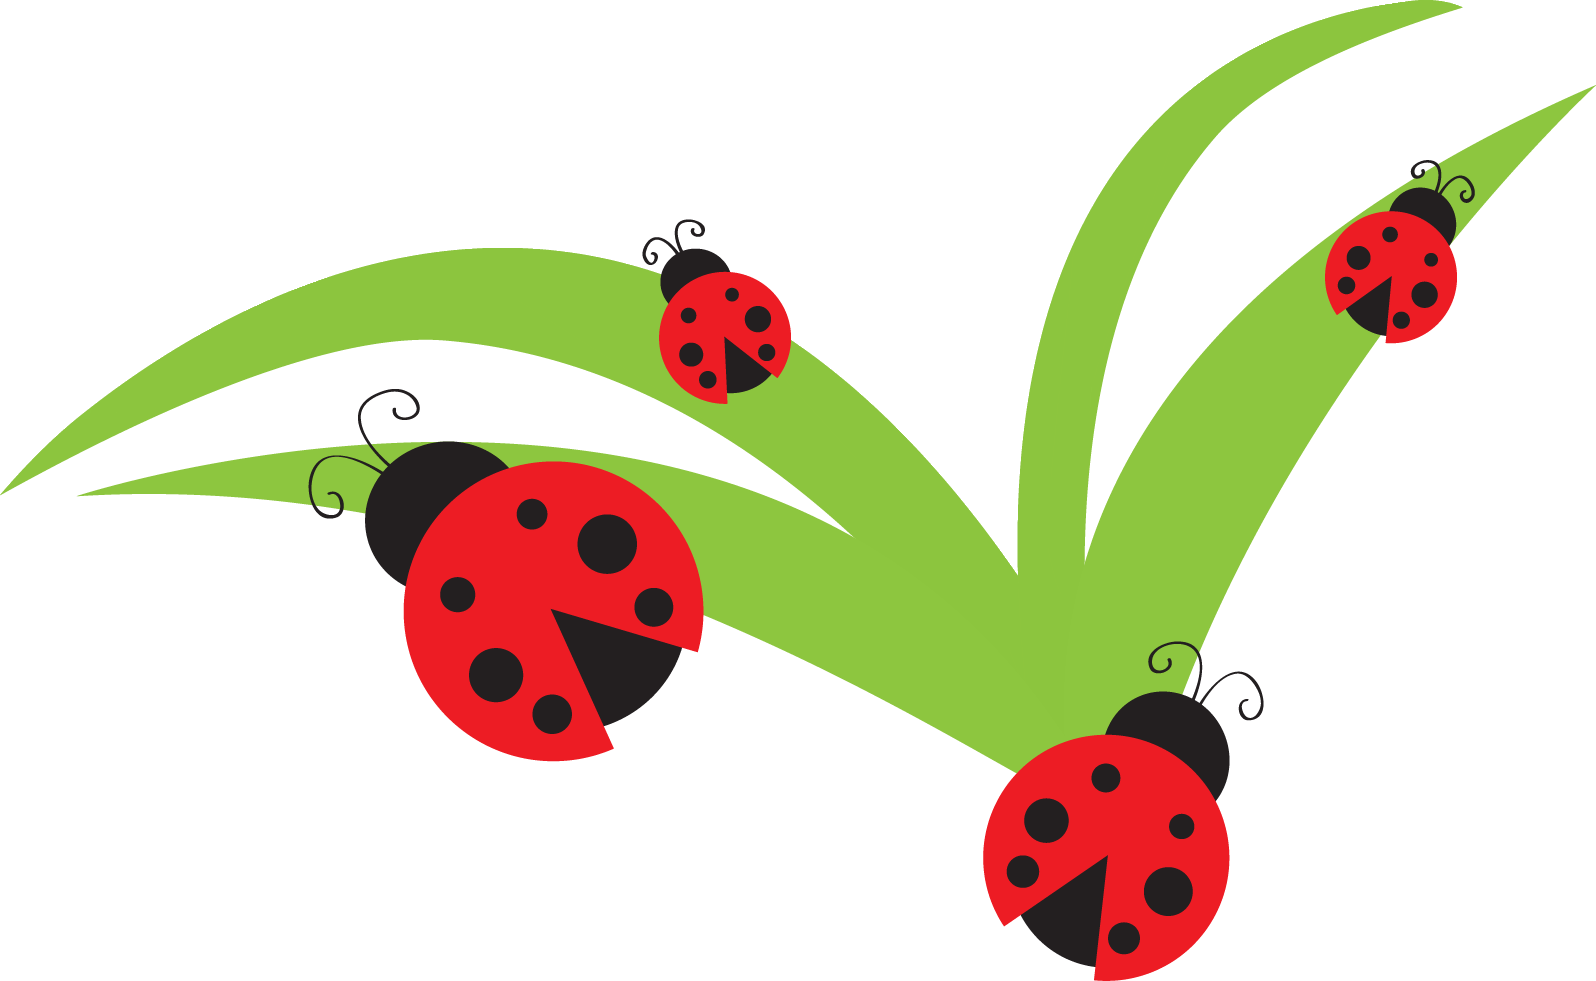 All Clip art on Unlimited Commercial Use - Open Clip Art Library ... for Clipart Ladybug On Leaf  54lyp